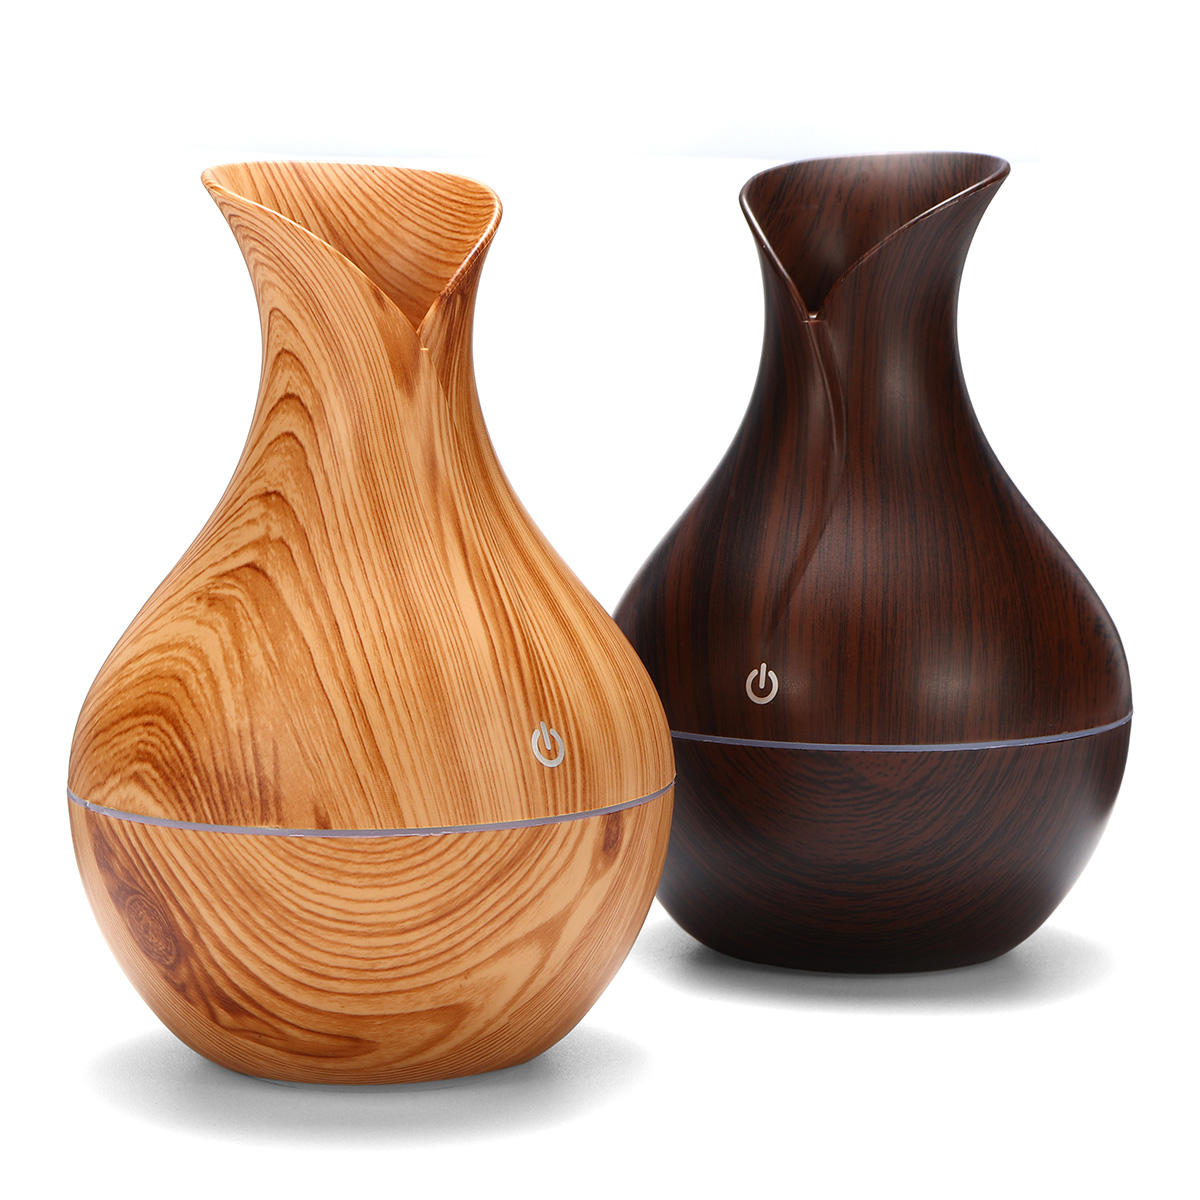 USB Electric Wood Grain Ultrasonic Cool Mist Humidifier Aroma Essential Oil Diffuser LED lights - 2